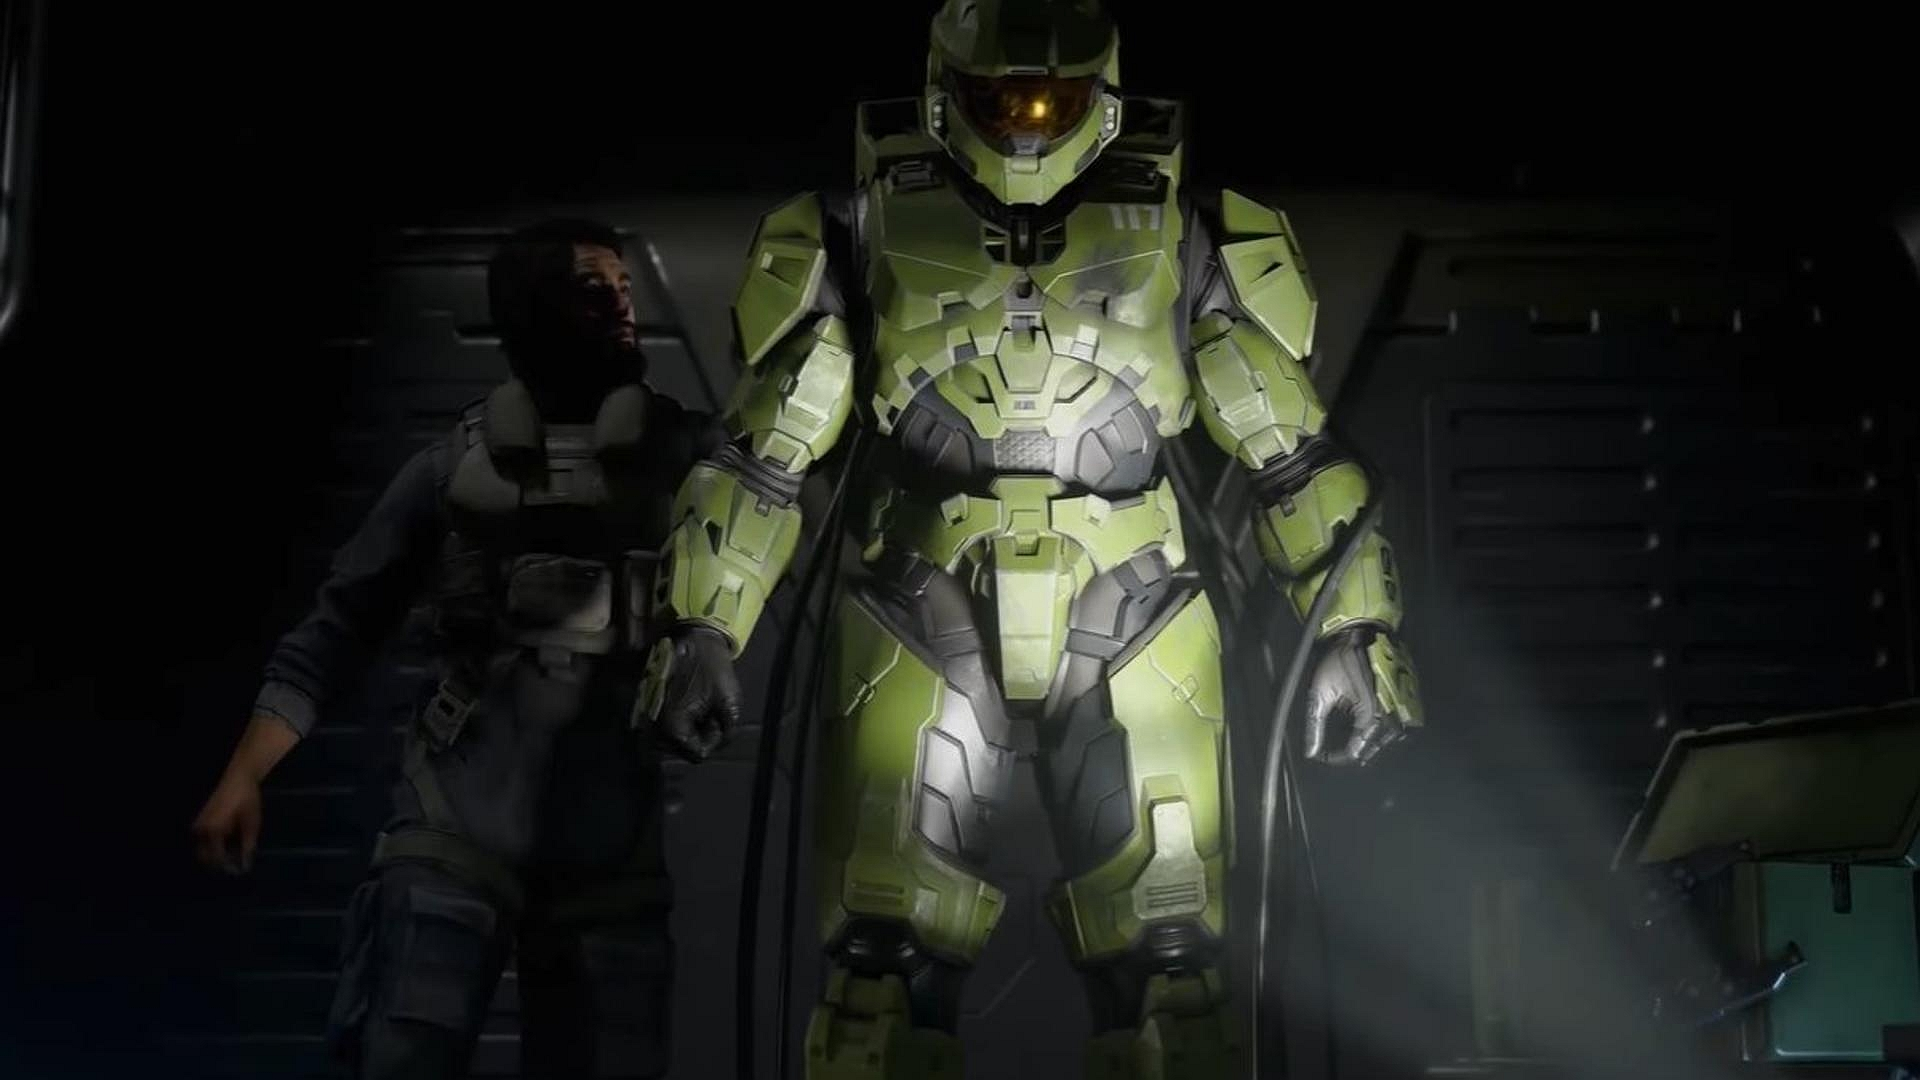 343i: Halo Infinite on Xbox One Won't Be 'Second-Class', We've Got a